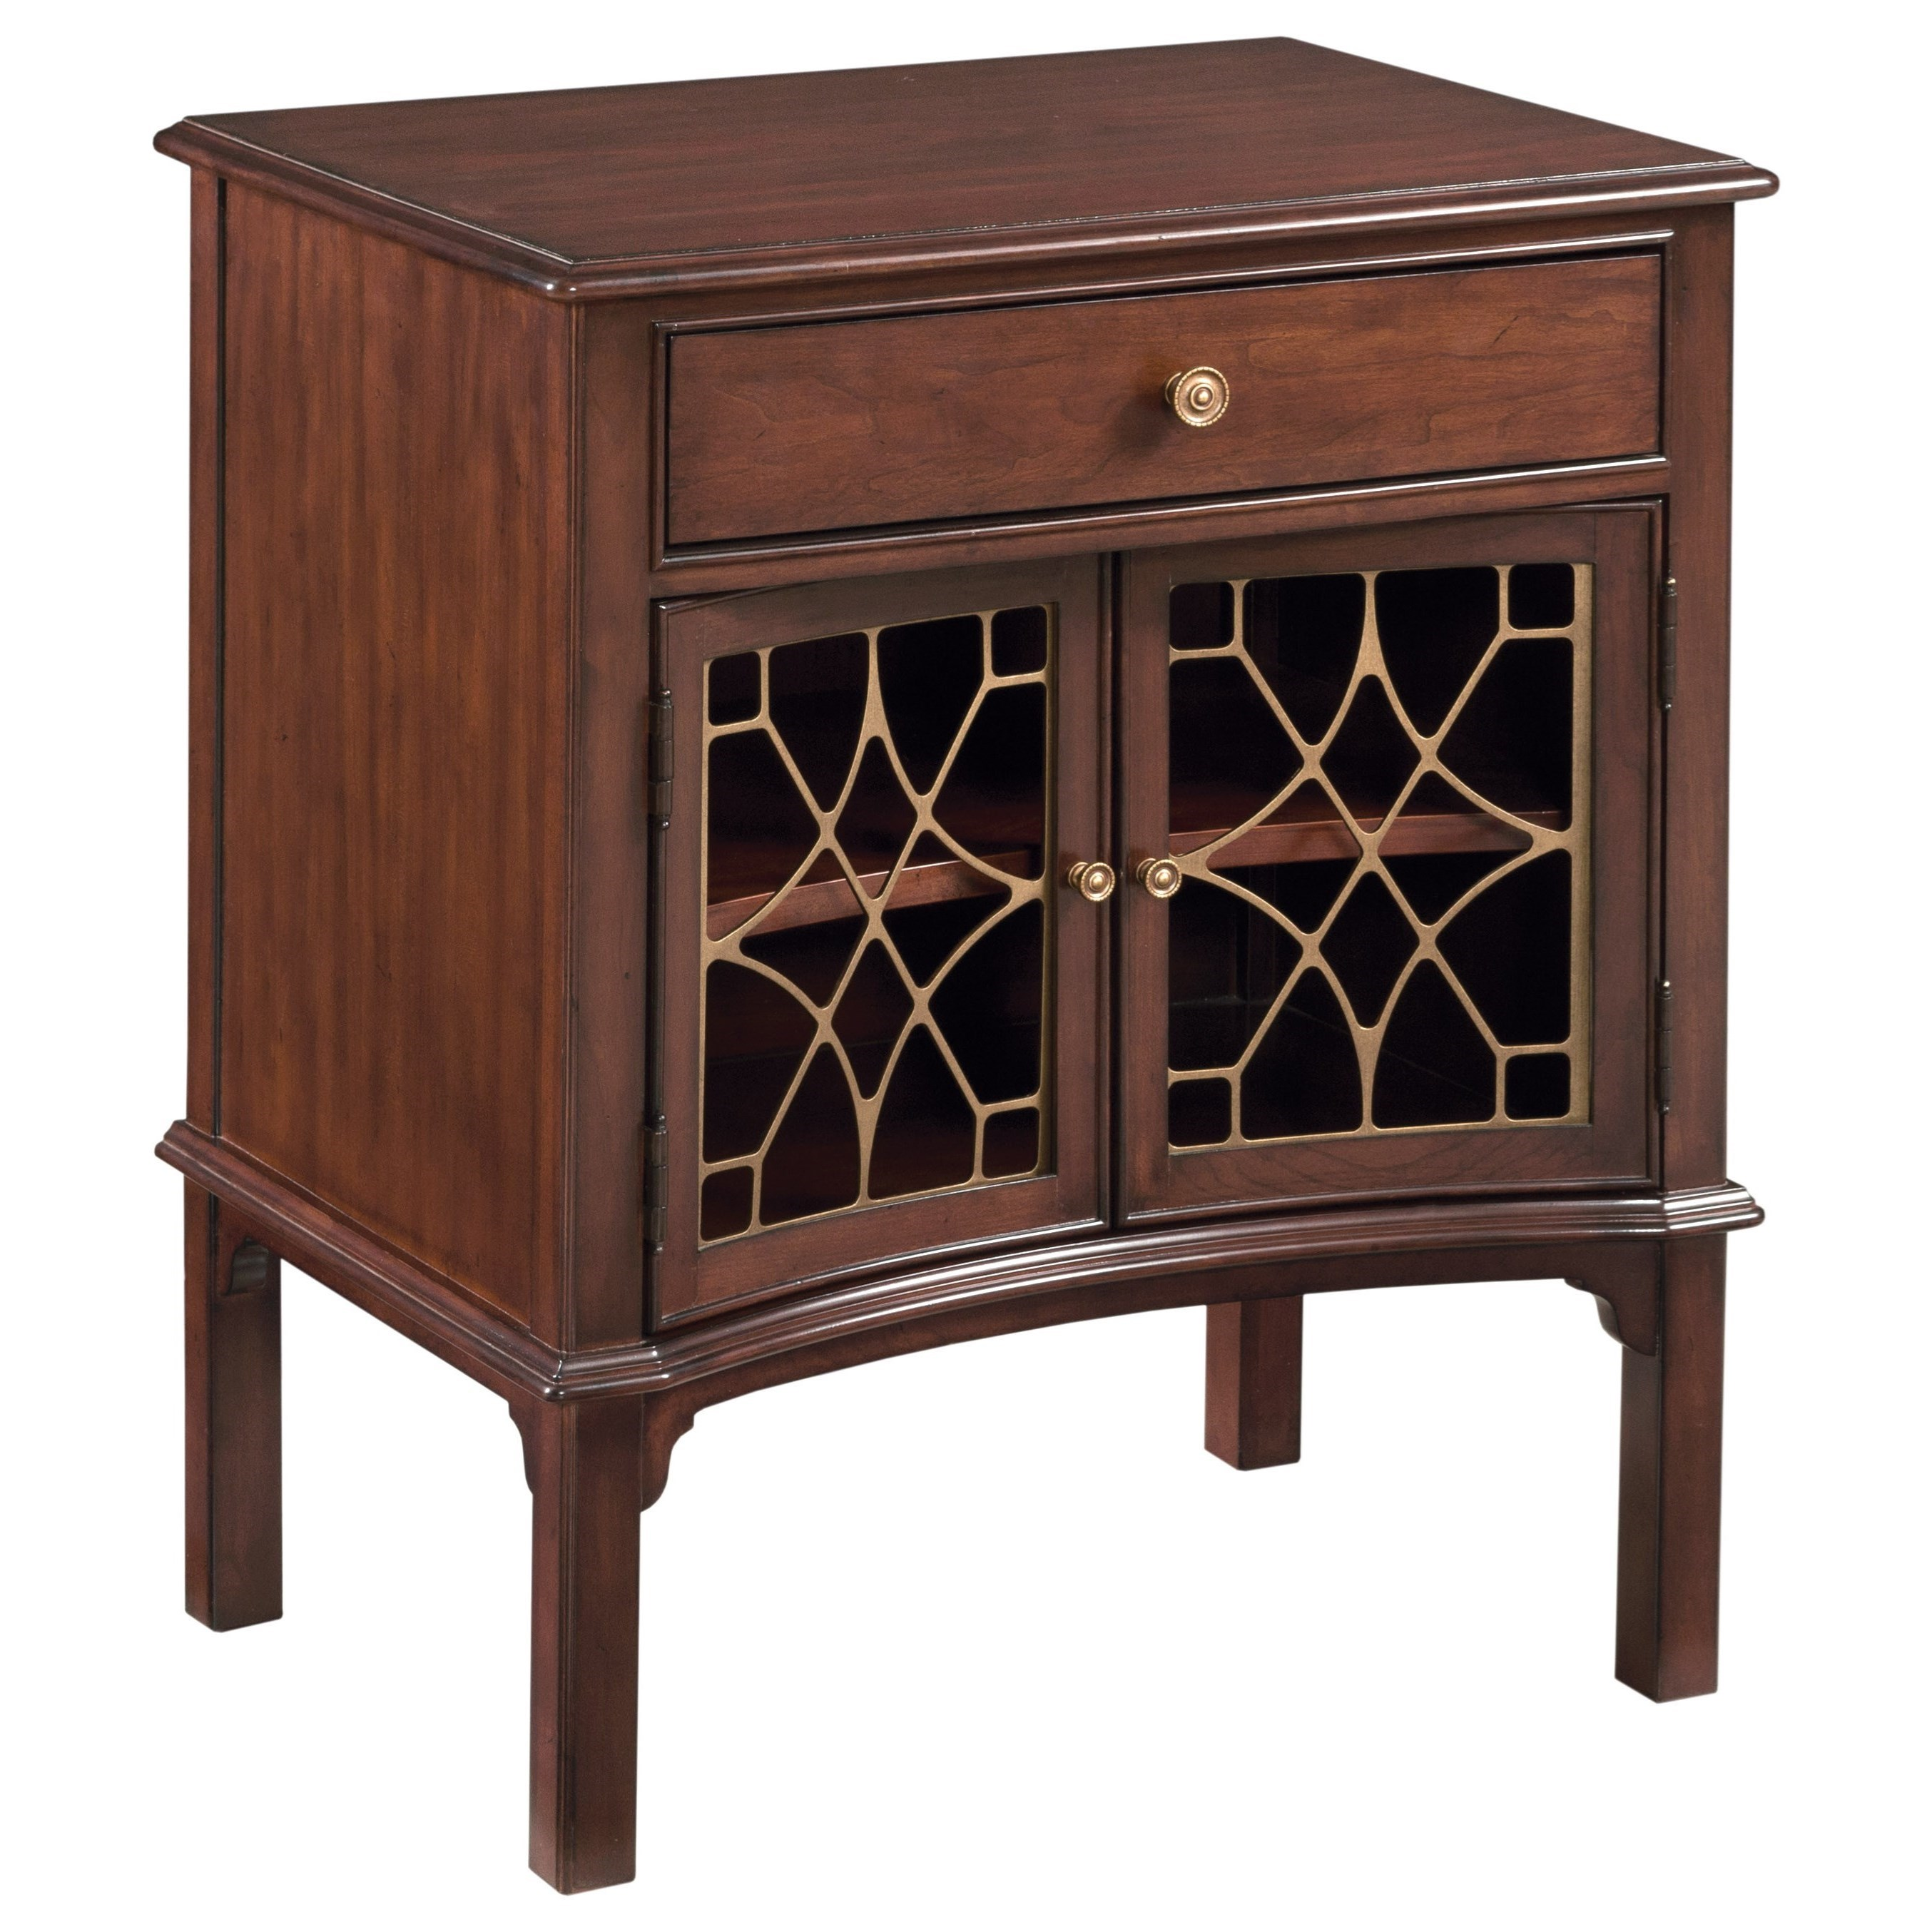 Hadleigh Bedside Table by Kincaid Furniture at Northeast Factory Direct